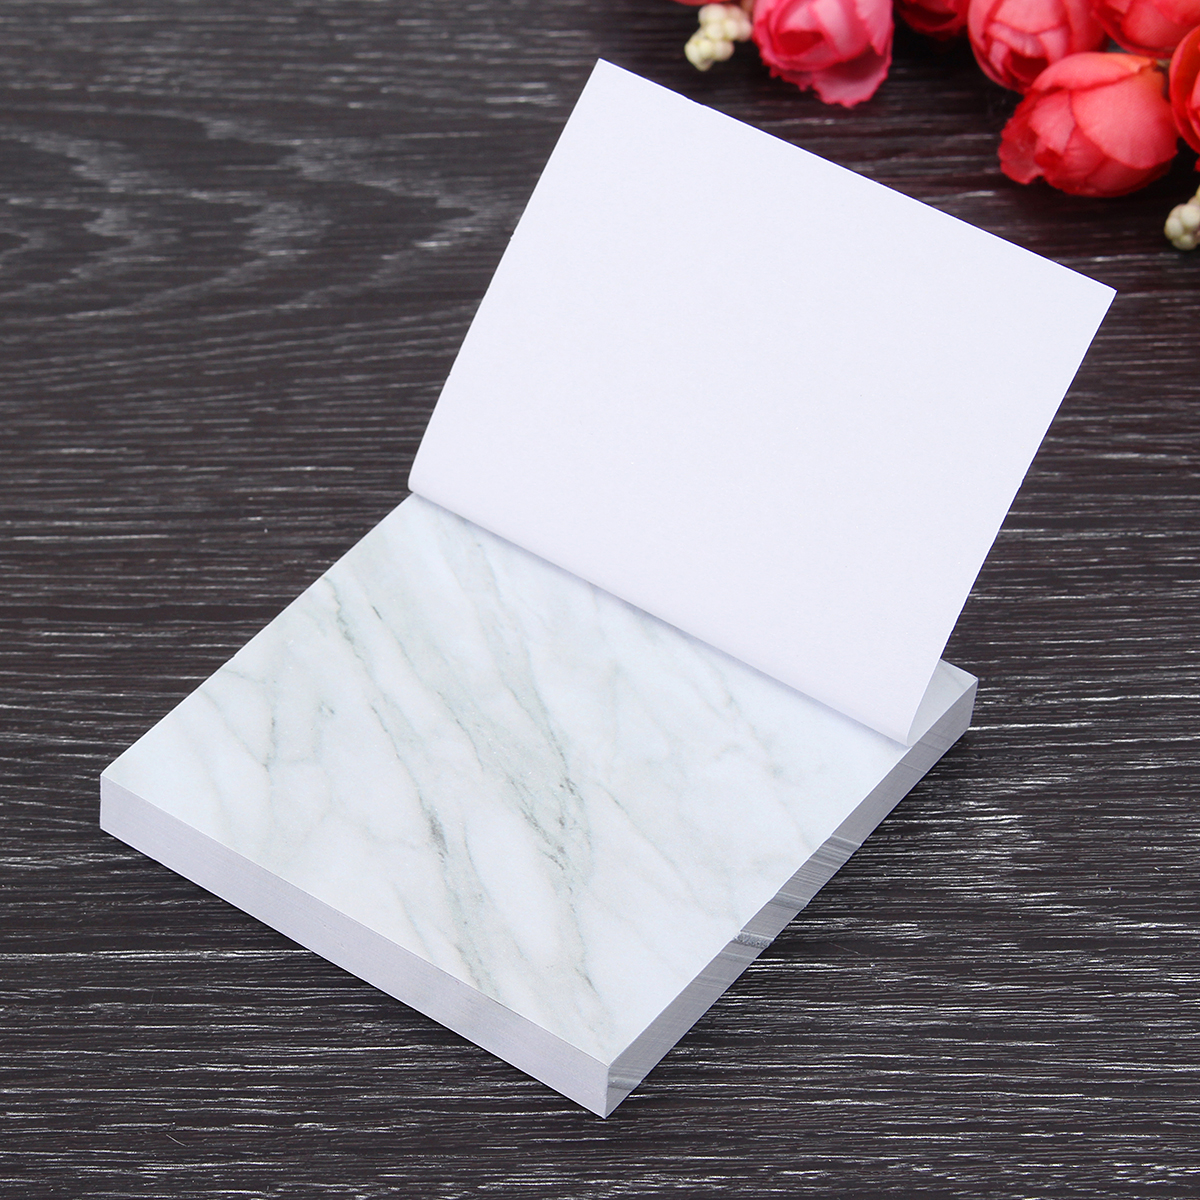 Stone Memo Pad Post It School Scrapbooking Sticky Notes Cute Planner Stationery Office Supplies